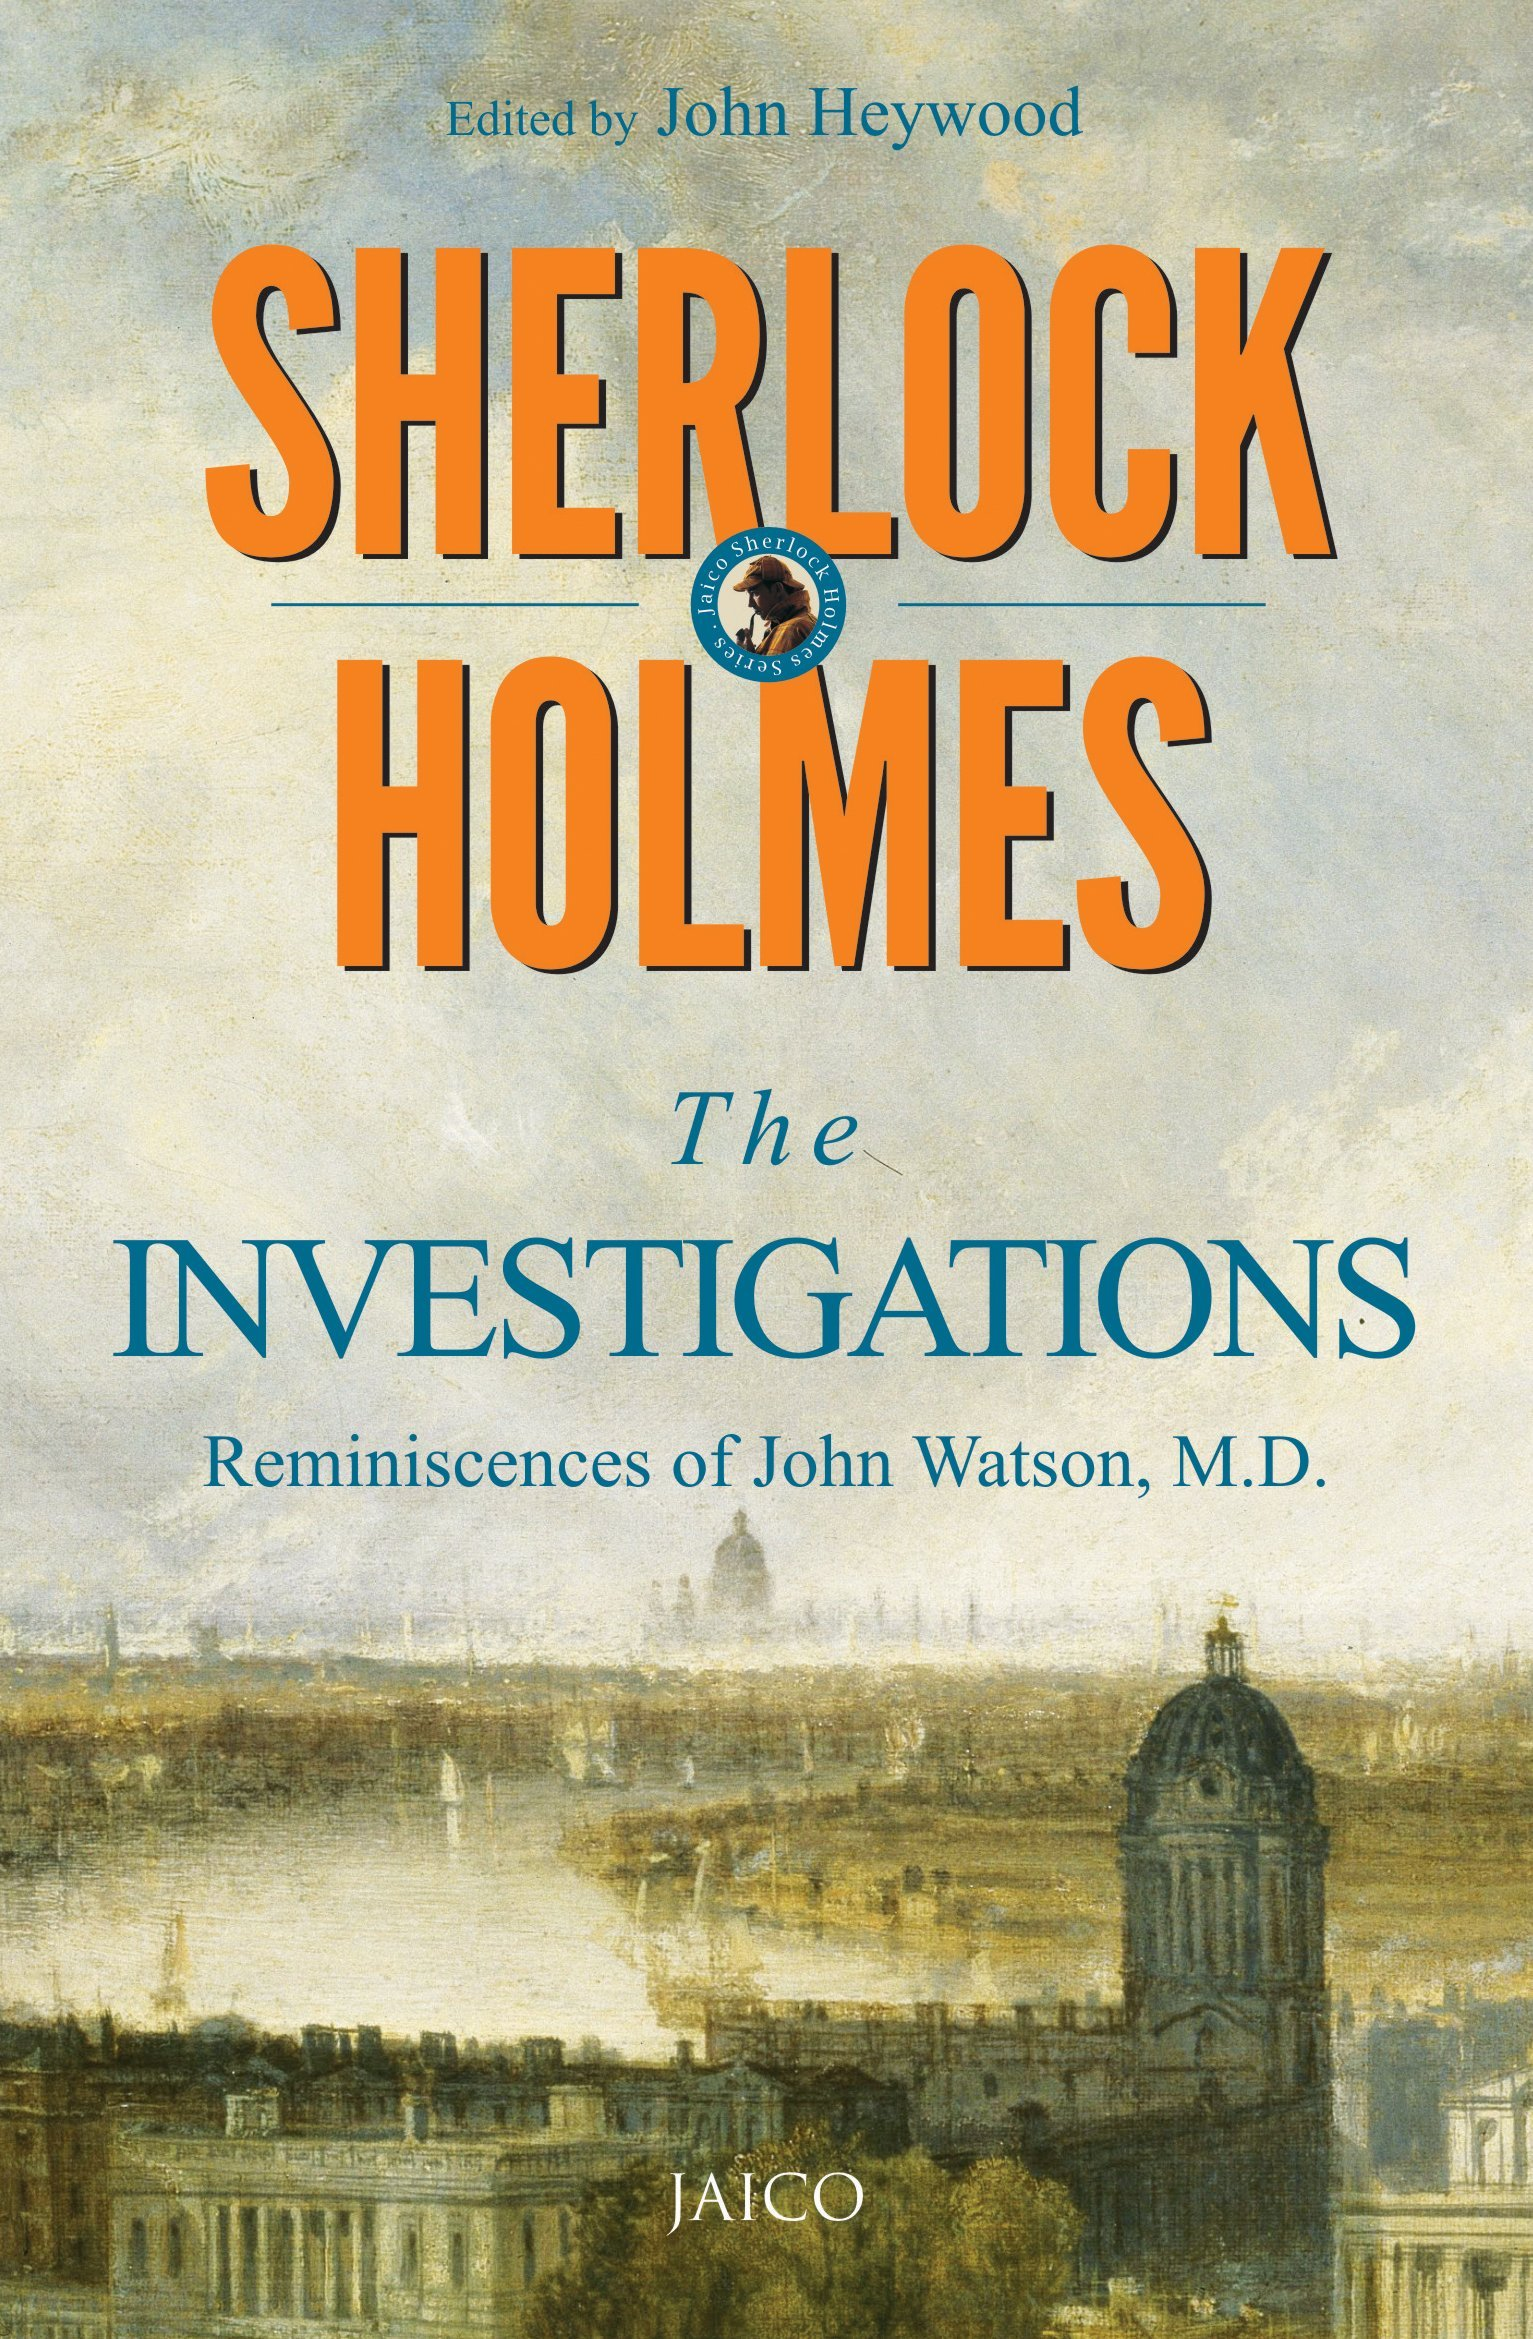 Amazon.in: Buy Sherlock Holmes : The Investigations Book Online at Low  Prices in India | Sherlock Holmes : The Investigations Reviews & Ratings